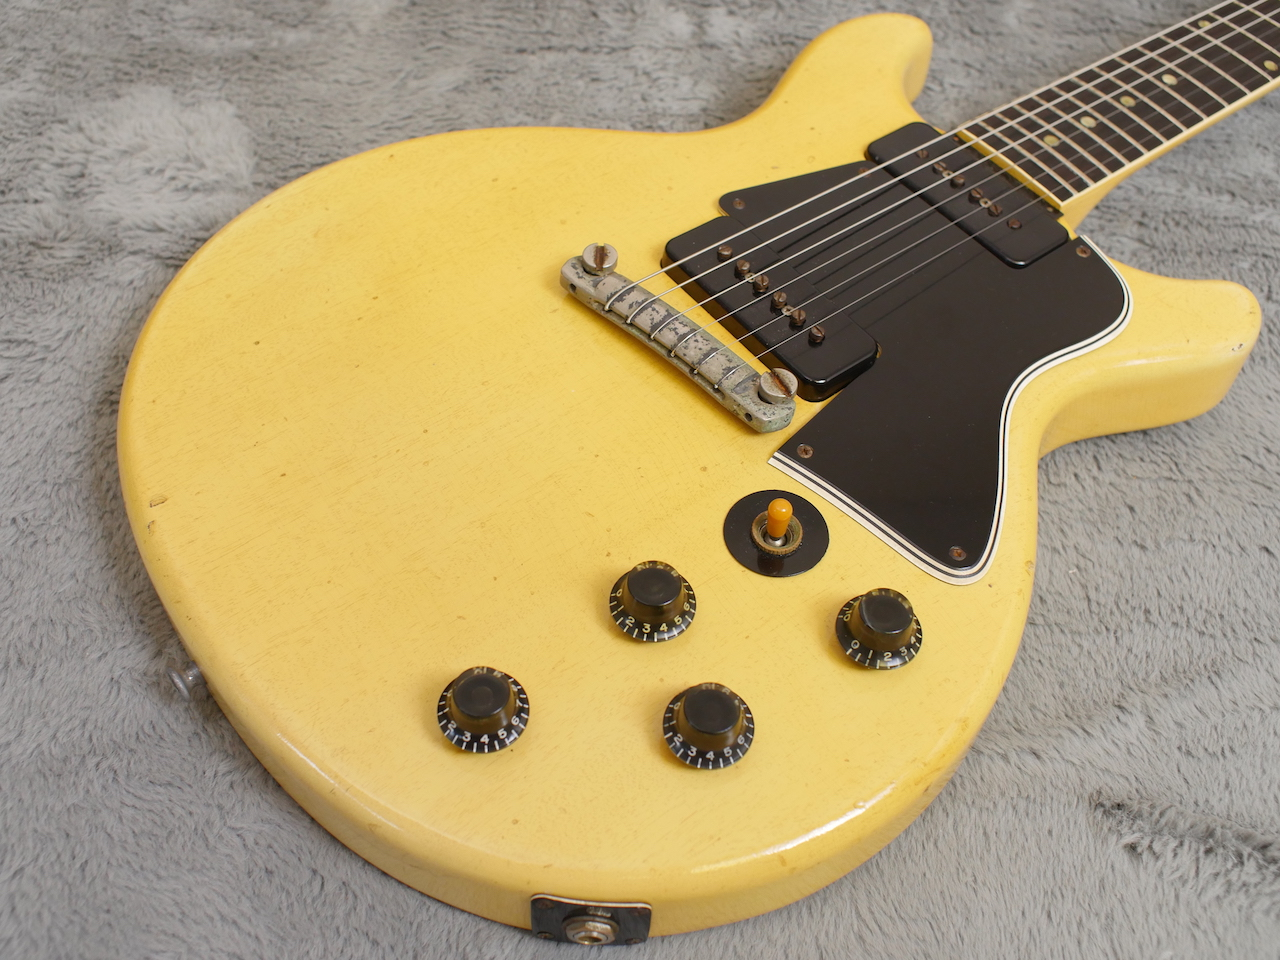 Gibson Les Paul Tv Special 1959 Tv Yellow Guitar For Sale Atb Guitars